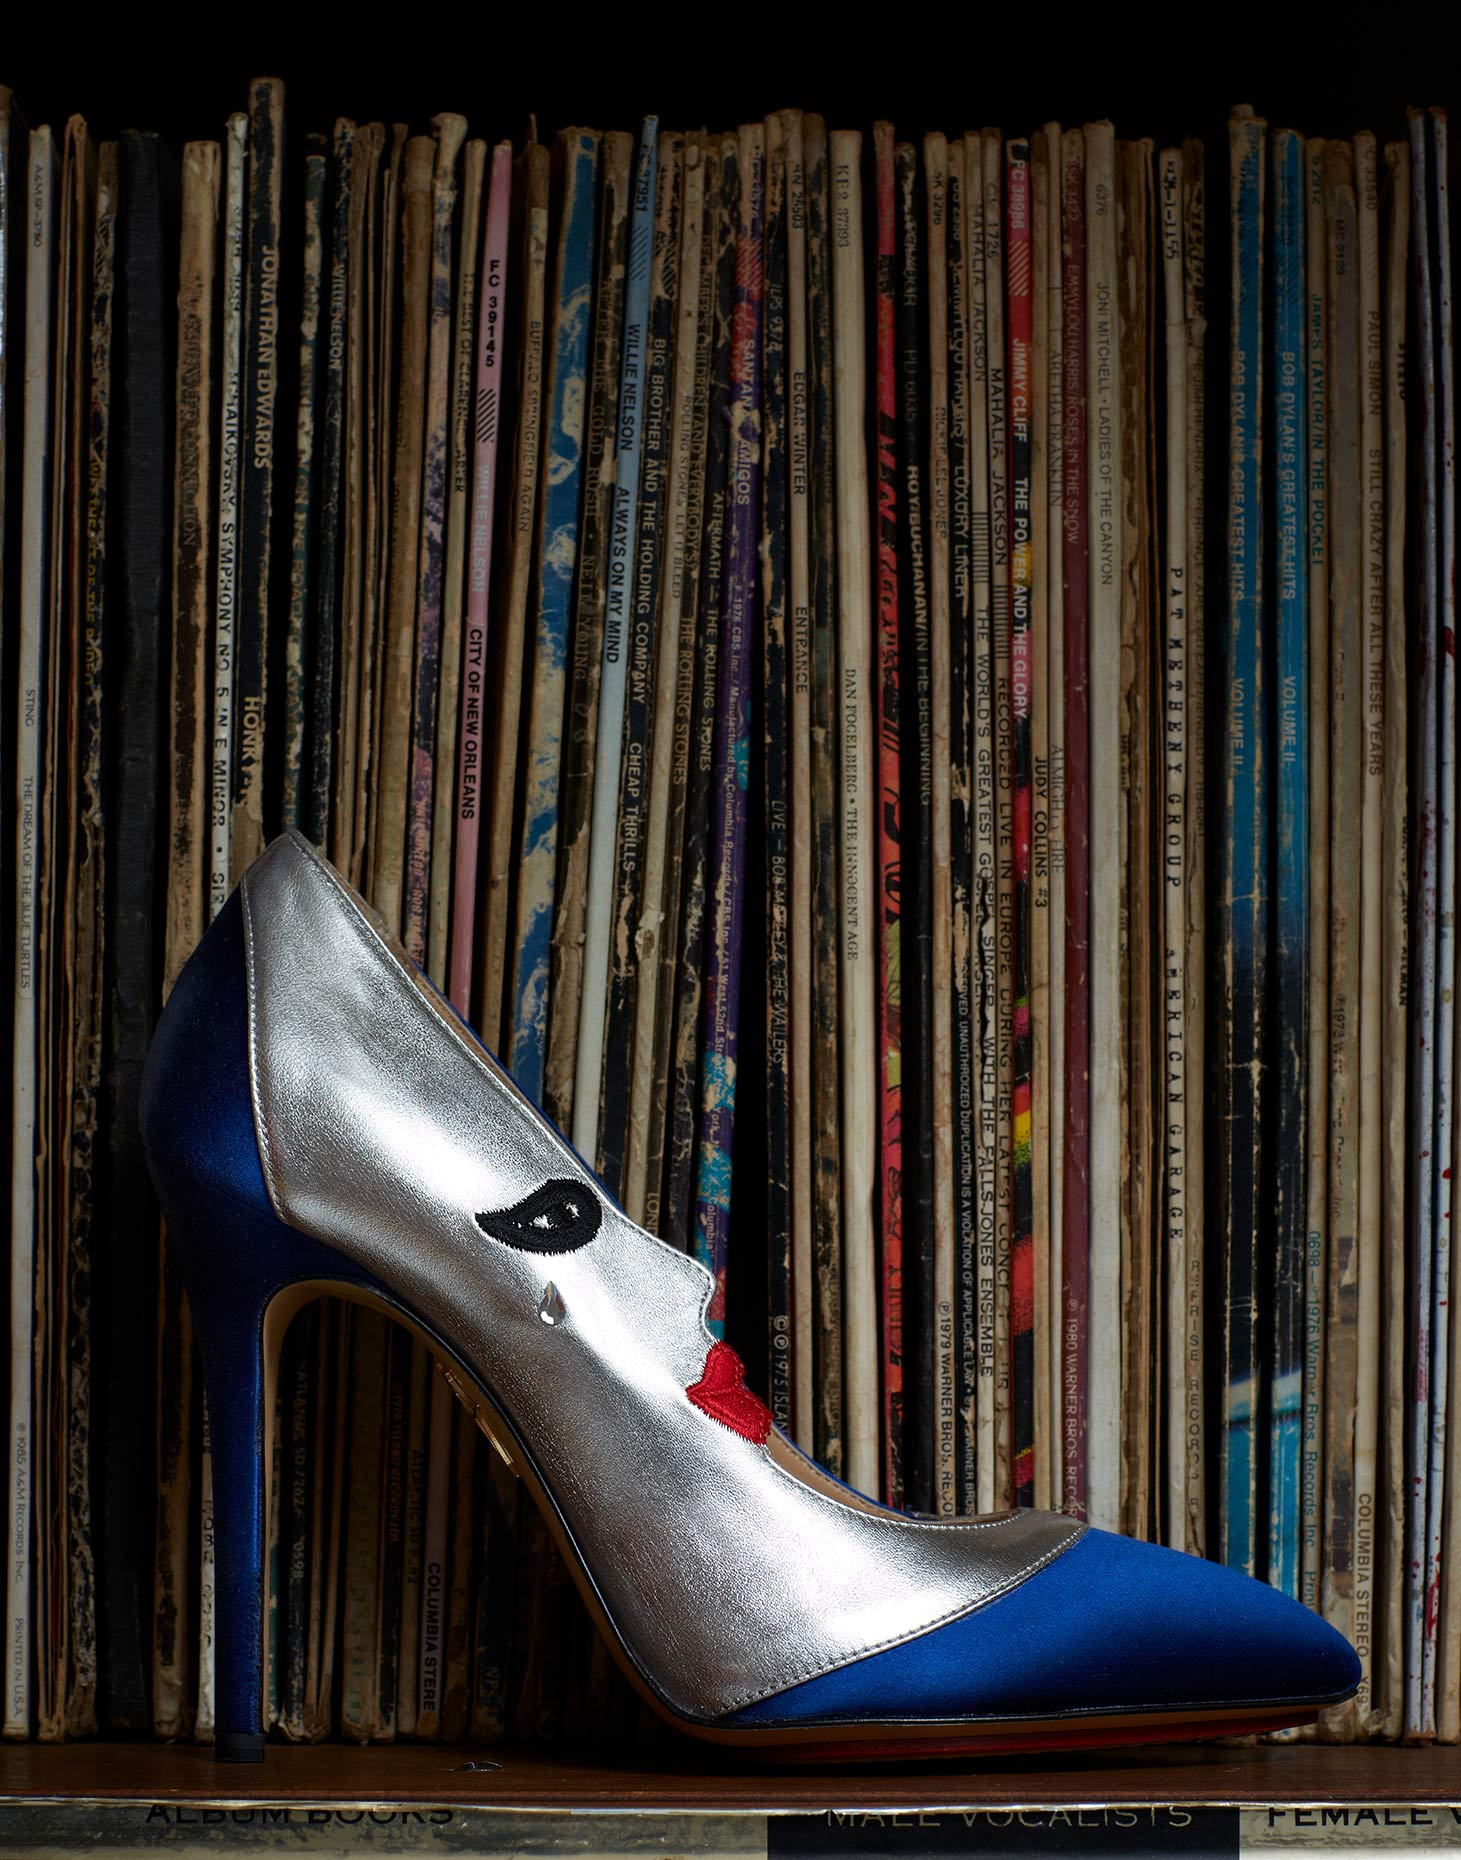 Prada heels and old records